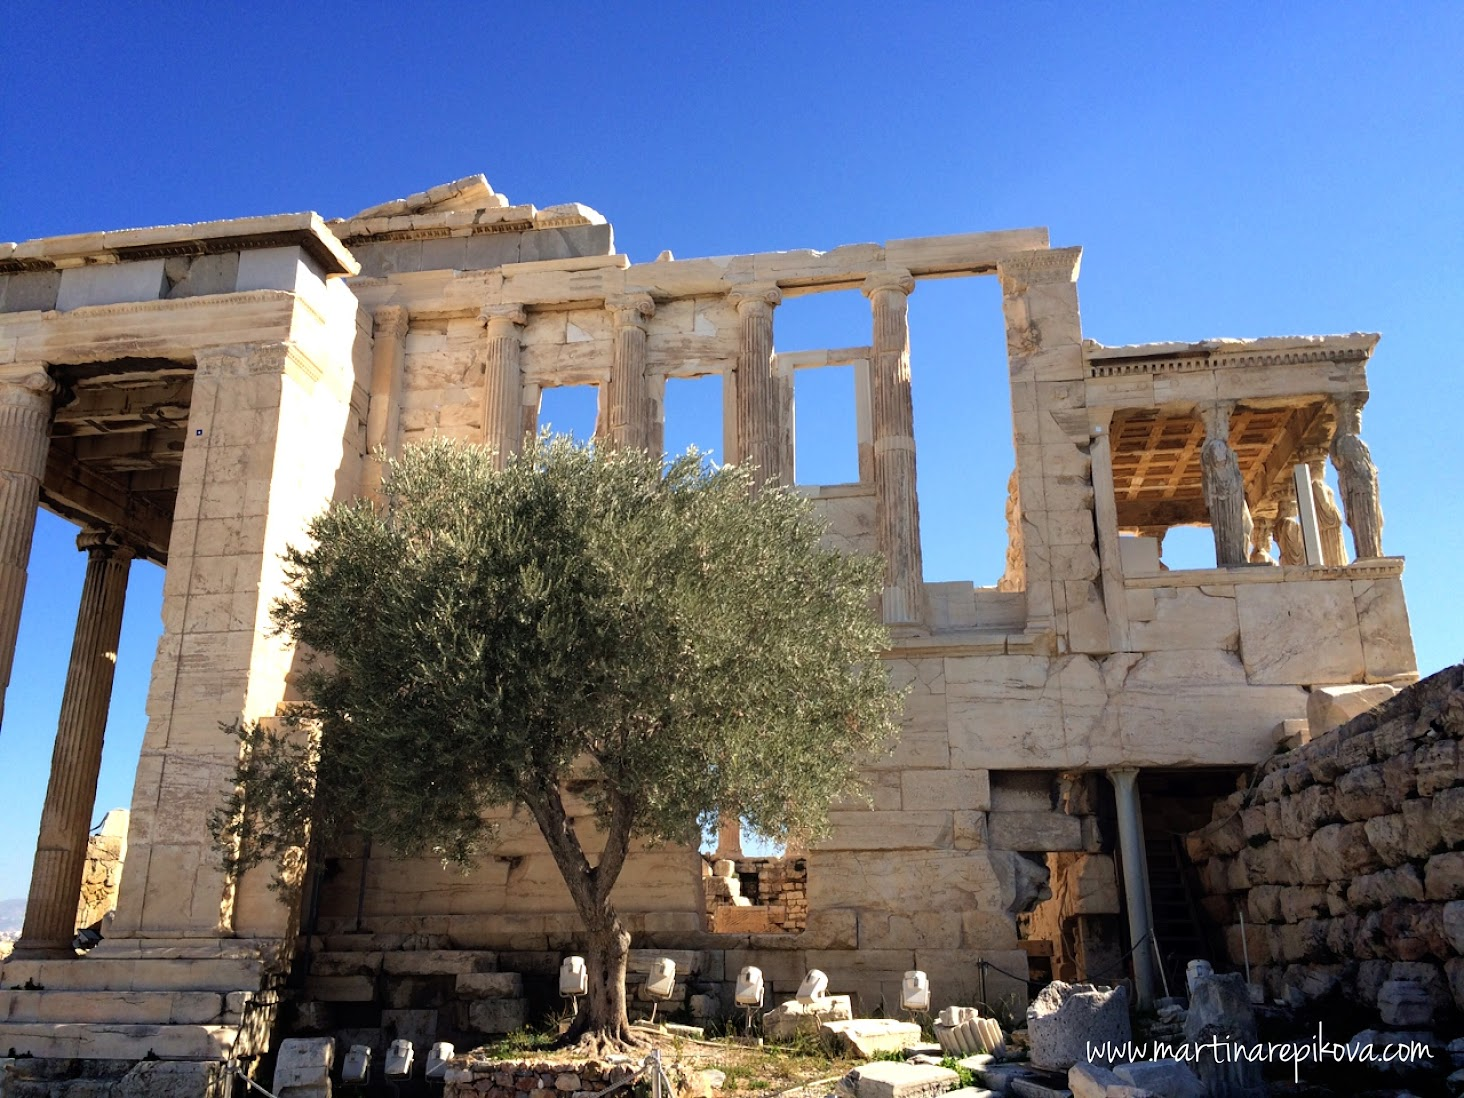 The Olive Tree at Erechteion, Acropolis, Athens, Greece